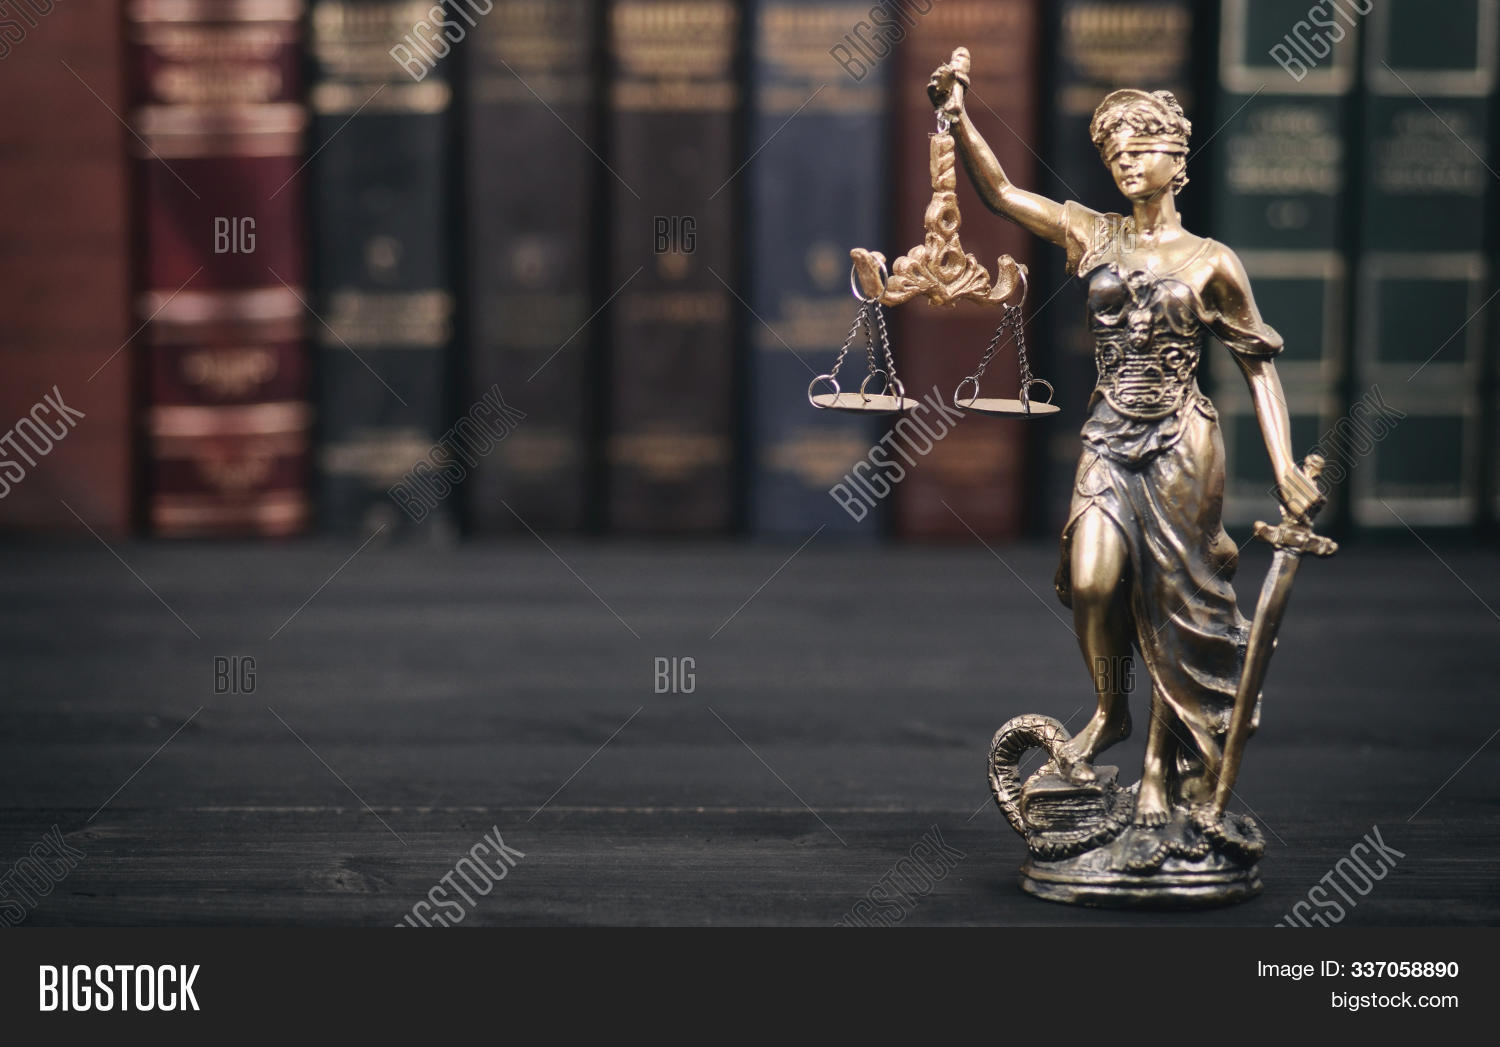 admonition,advocate,attorney,balance,blind,book,bookshelf,bronze,building,business,concept,court,courtroom,crime,equality,female,figure,freedom,government,guilty,innocence,judge,judgment,judiciary,justice,justitia,lady,law,lawyer,legal,legislation,light,office,person,police,process,prosecution,punishment,rays,scale,sculpture,statue,stature,study,sword,symbol,system,tribunal,university,woman